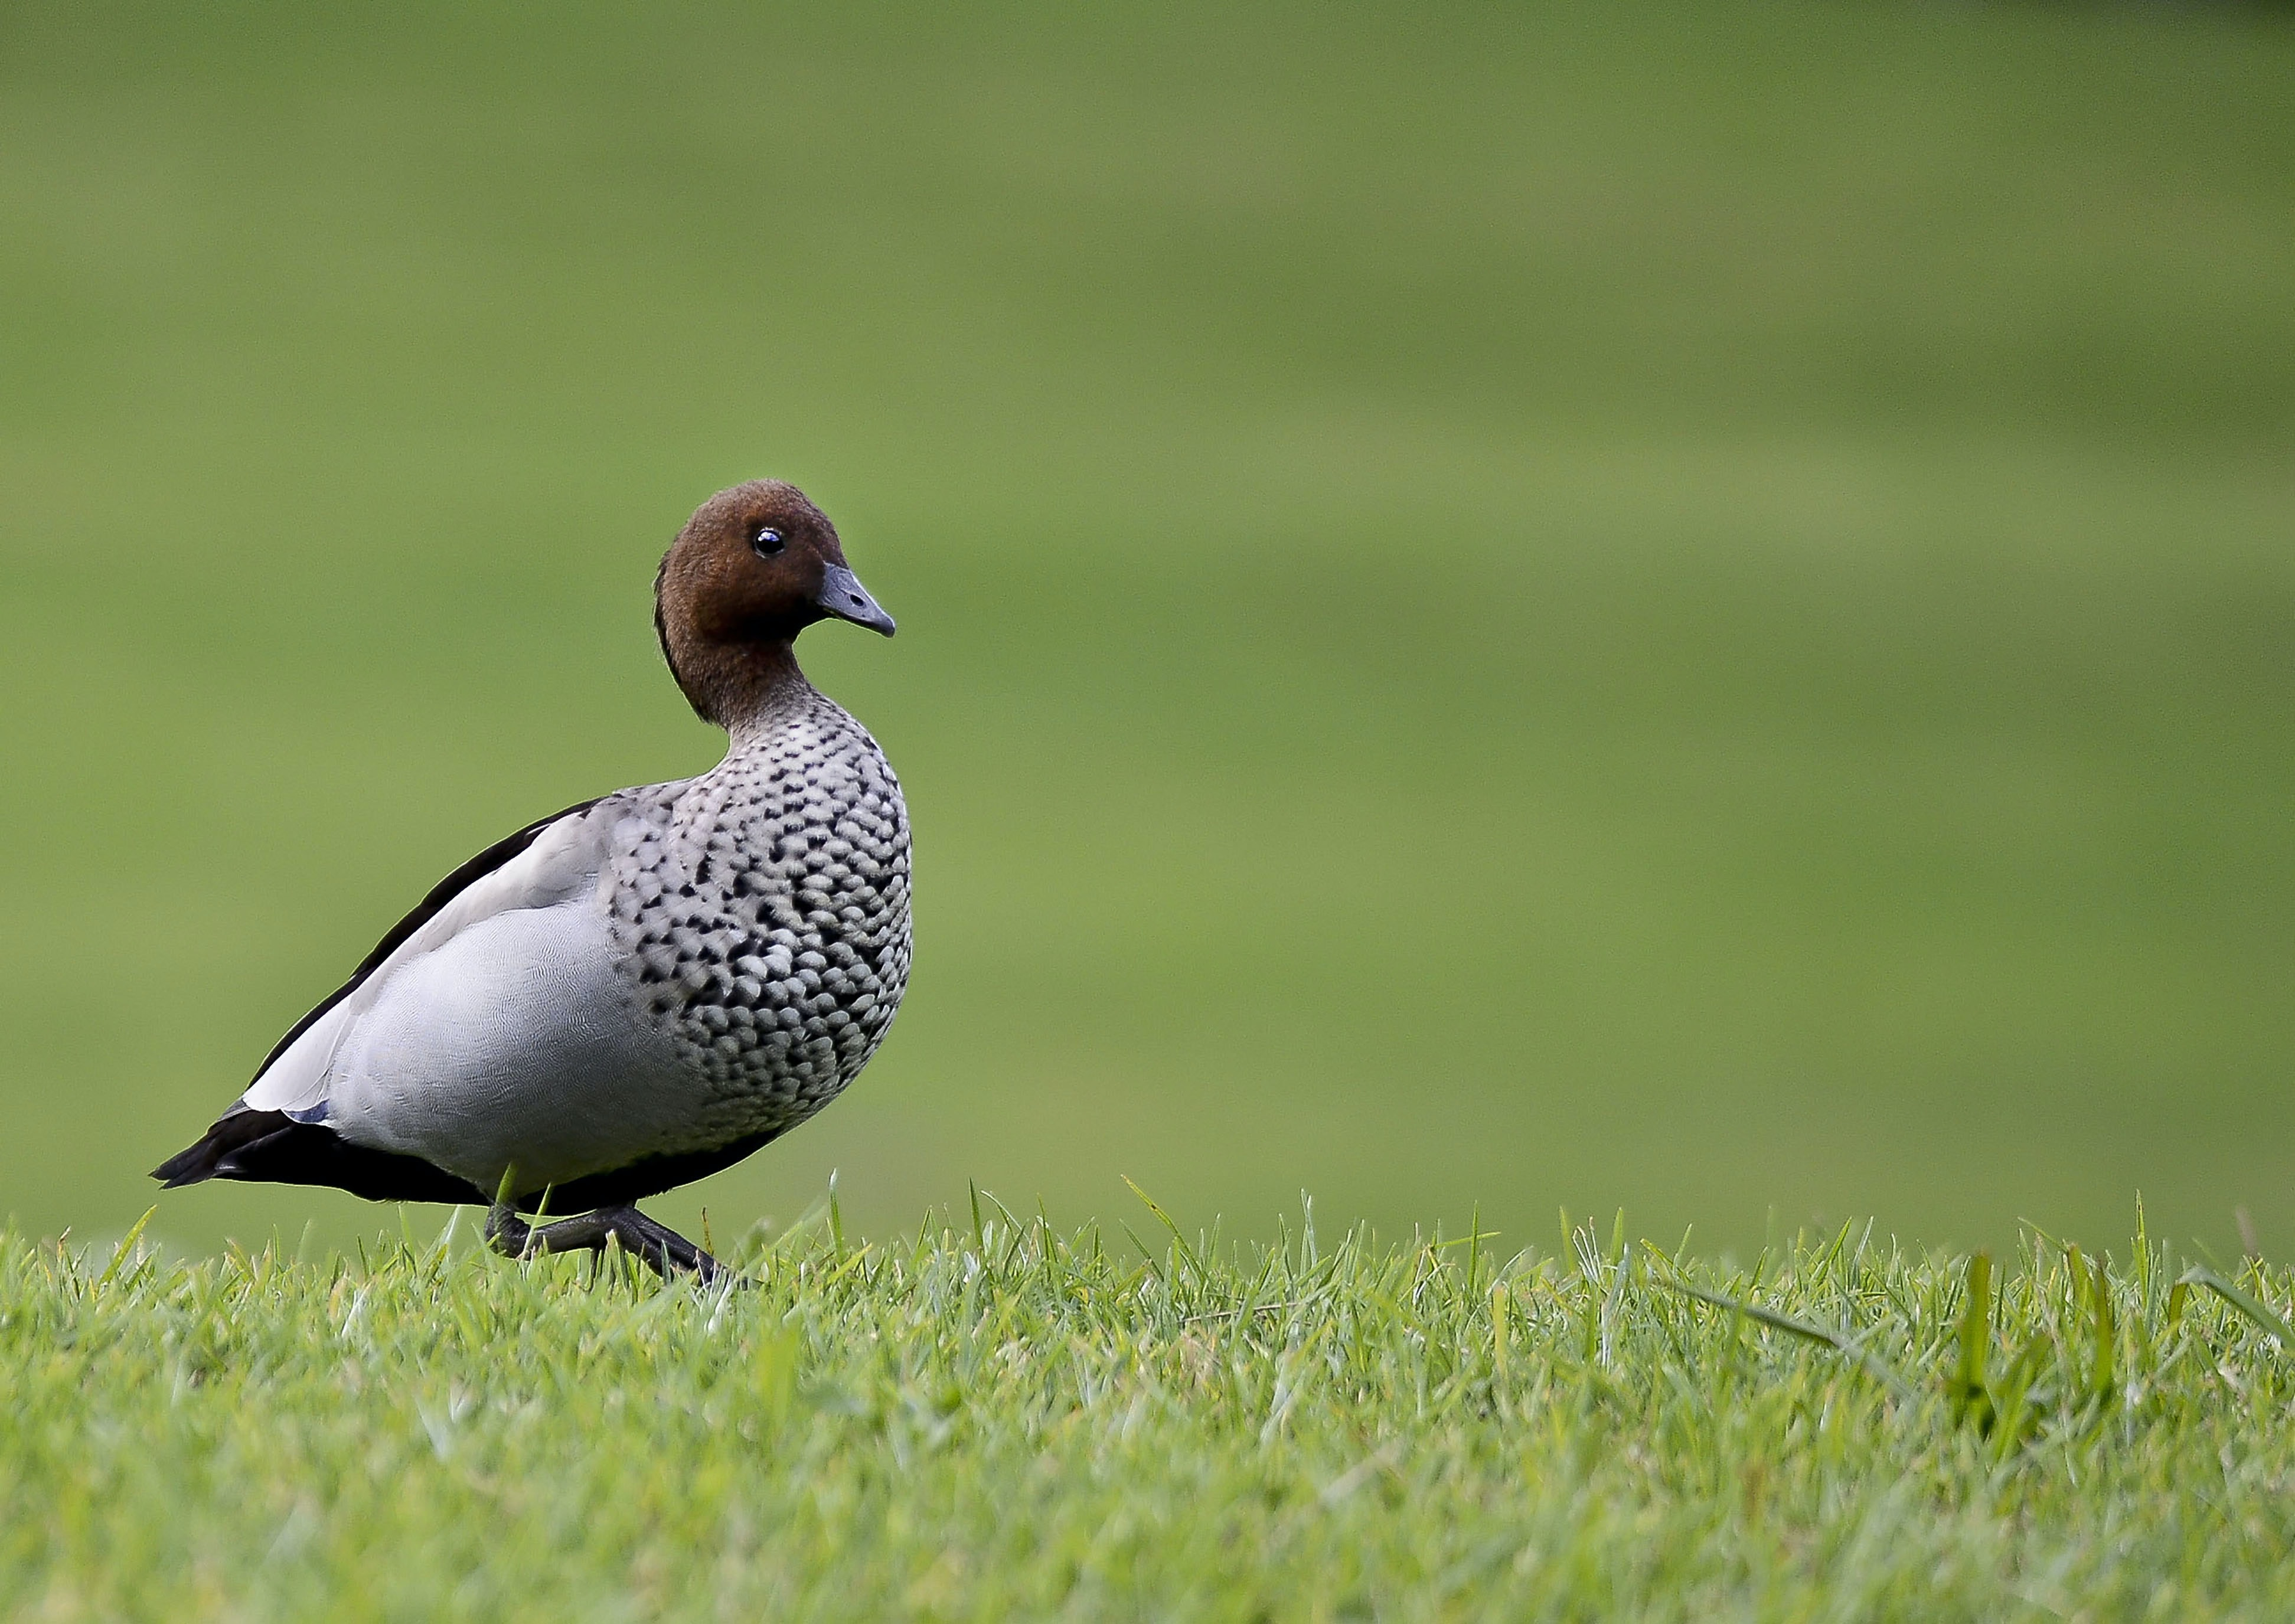 duck on grass field